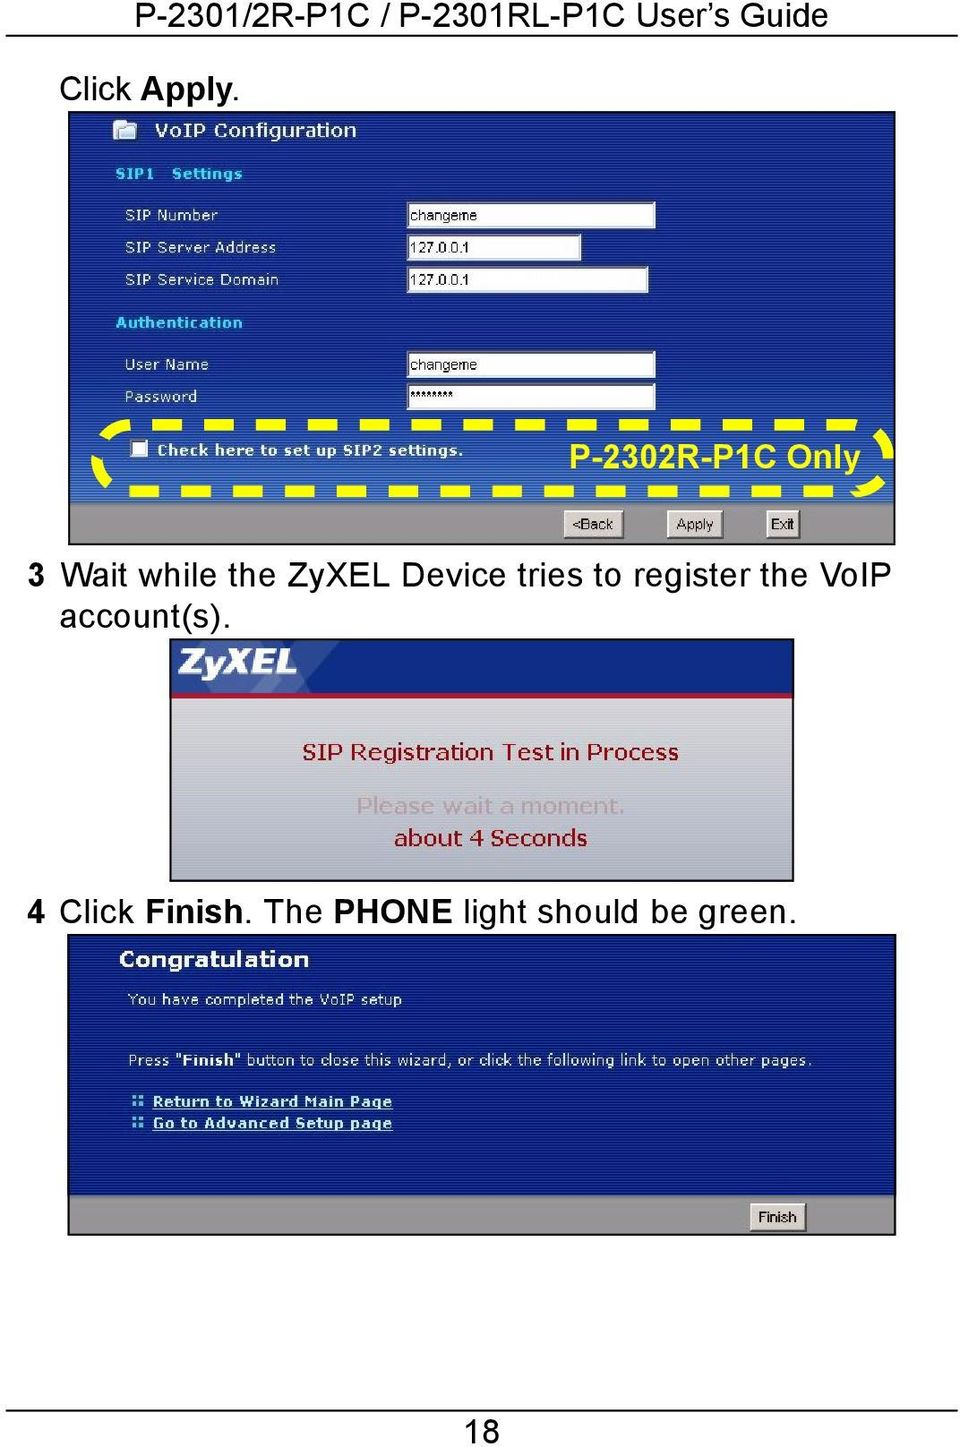 ZyXEL Device tries to register the